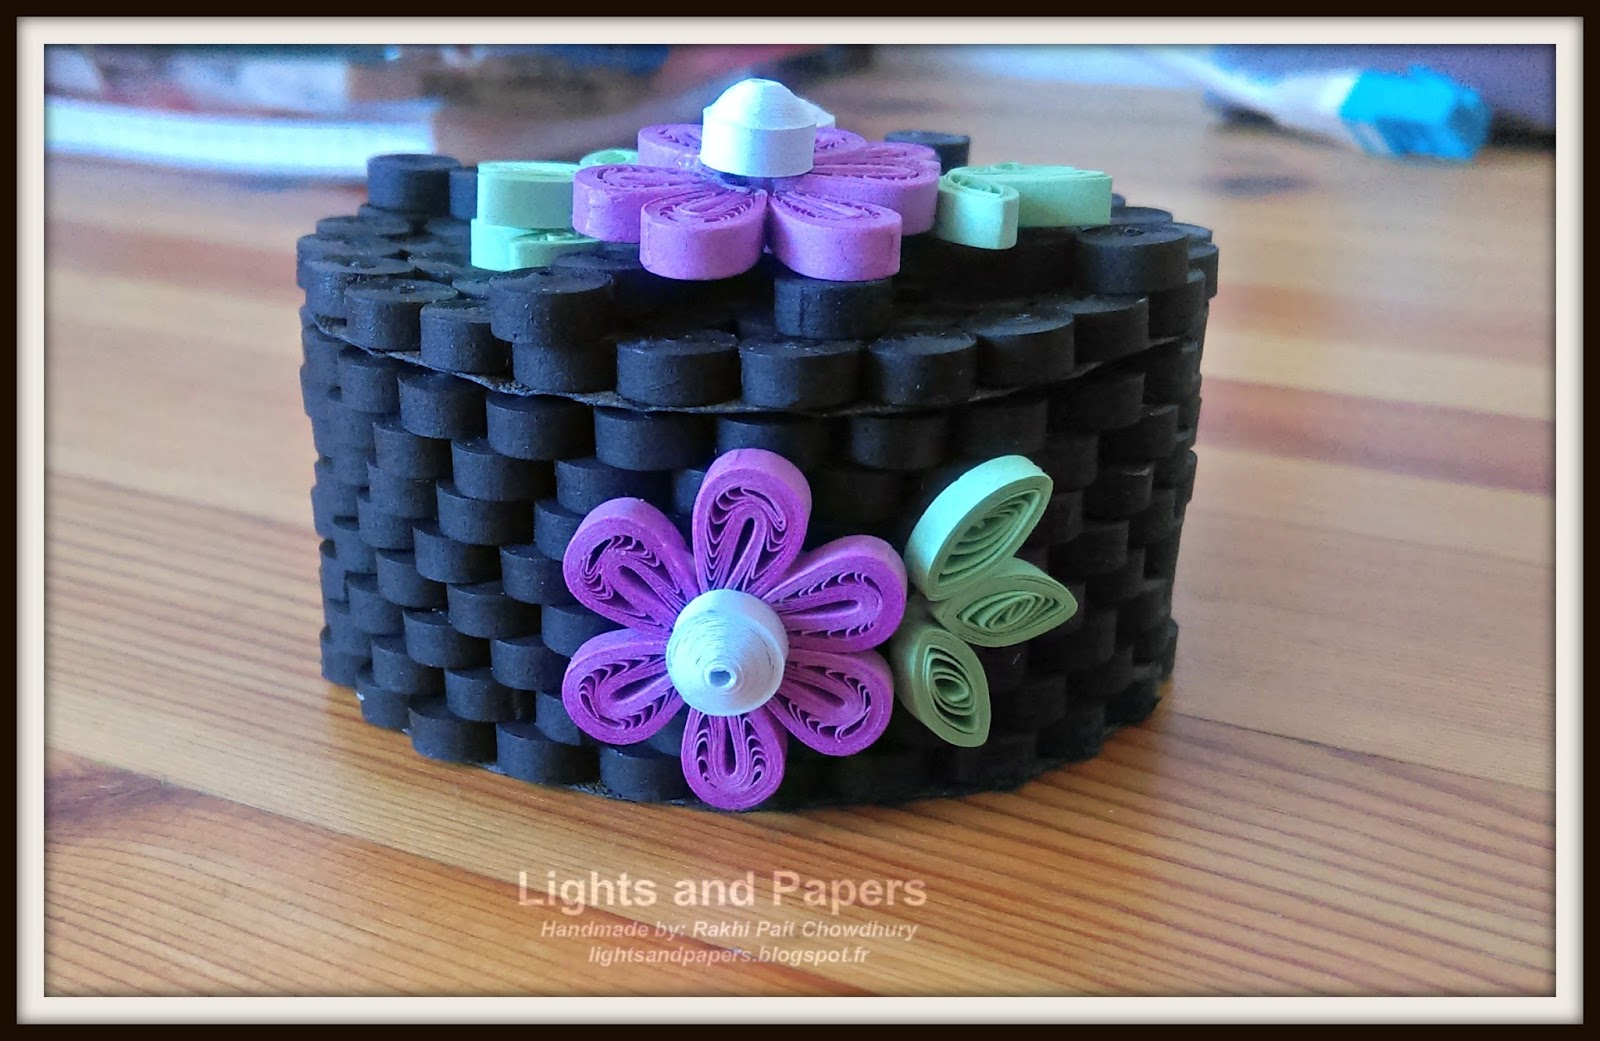 How To Make Paper Quilling Gift Box: Lights and Papers: A set of round gift boxesrh:lightsandpapers.blogspot.com,Design